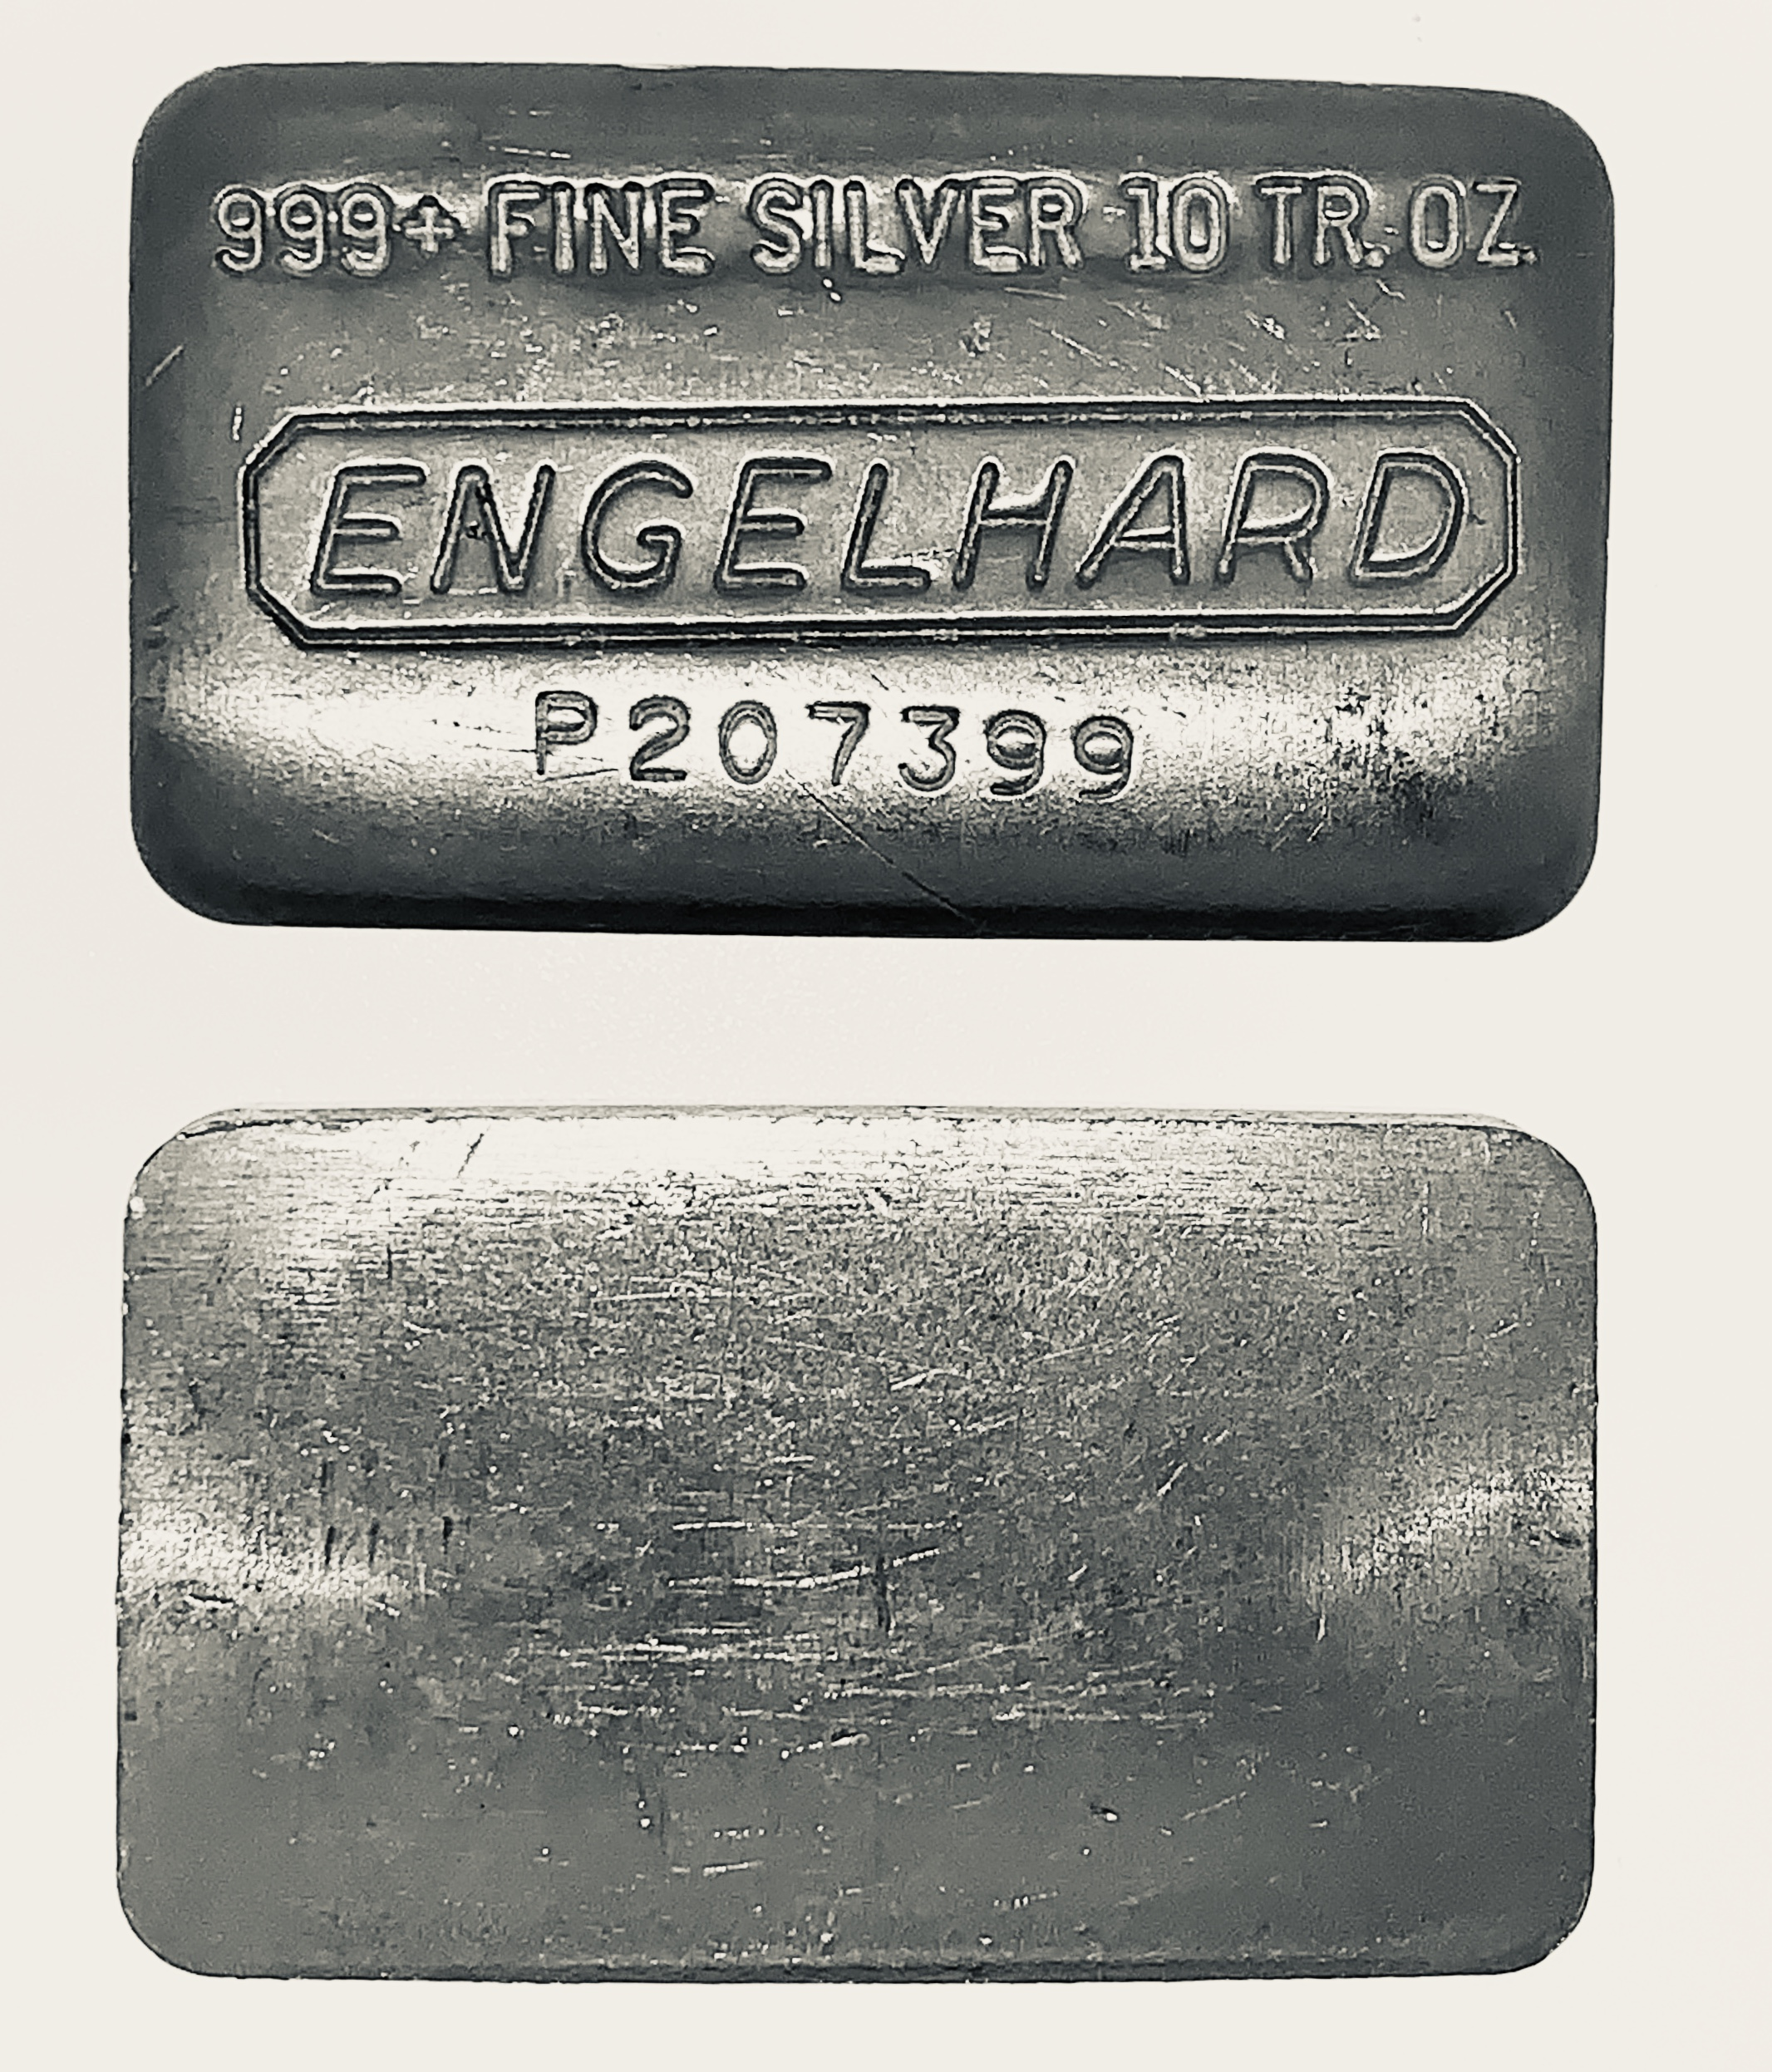 10 oz Silver Bar - Engelhard - Wide Poured